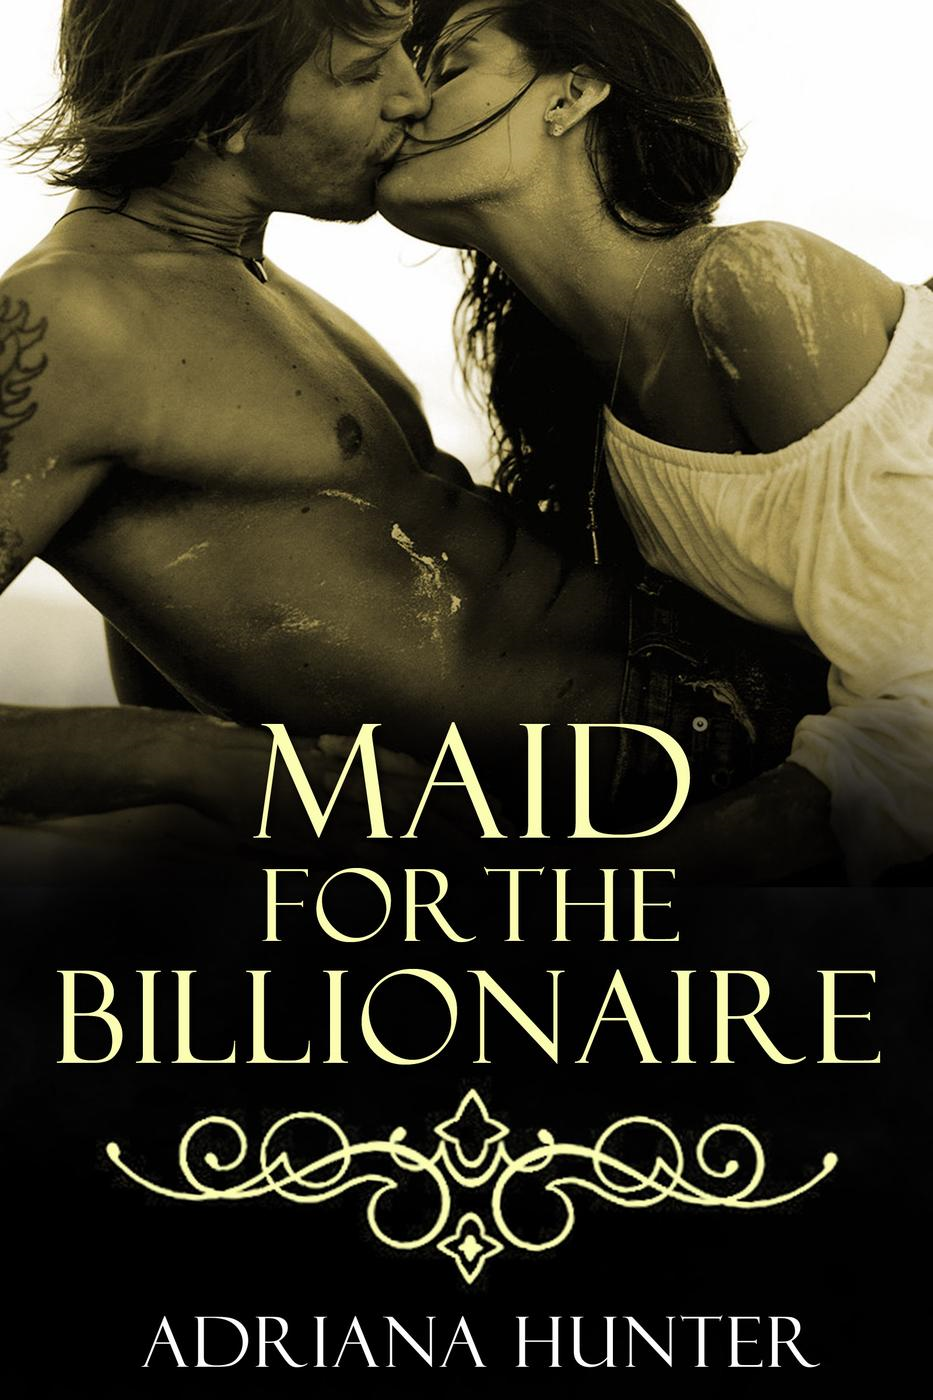 Maid For The Billionaire (BBW Erotic Romance: At The Billionaire's Command)